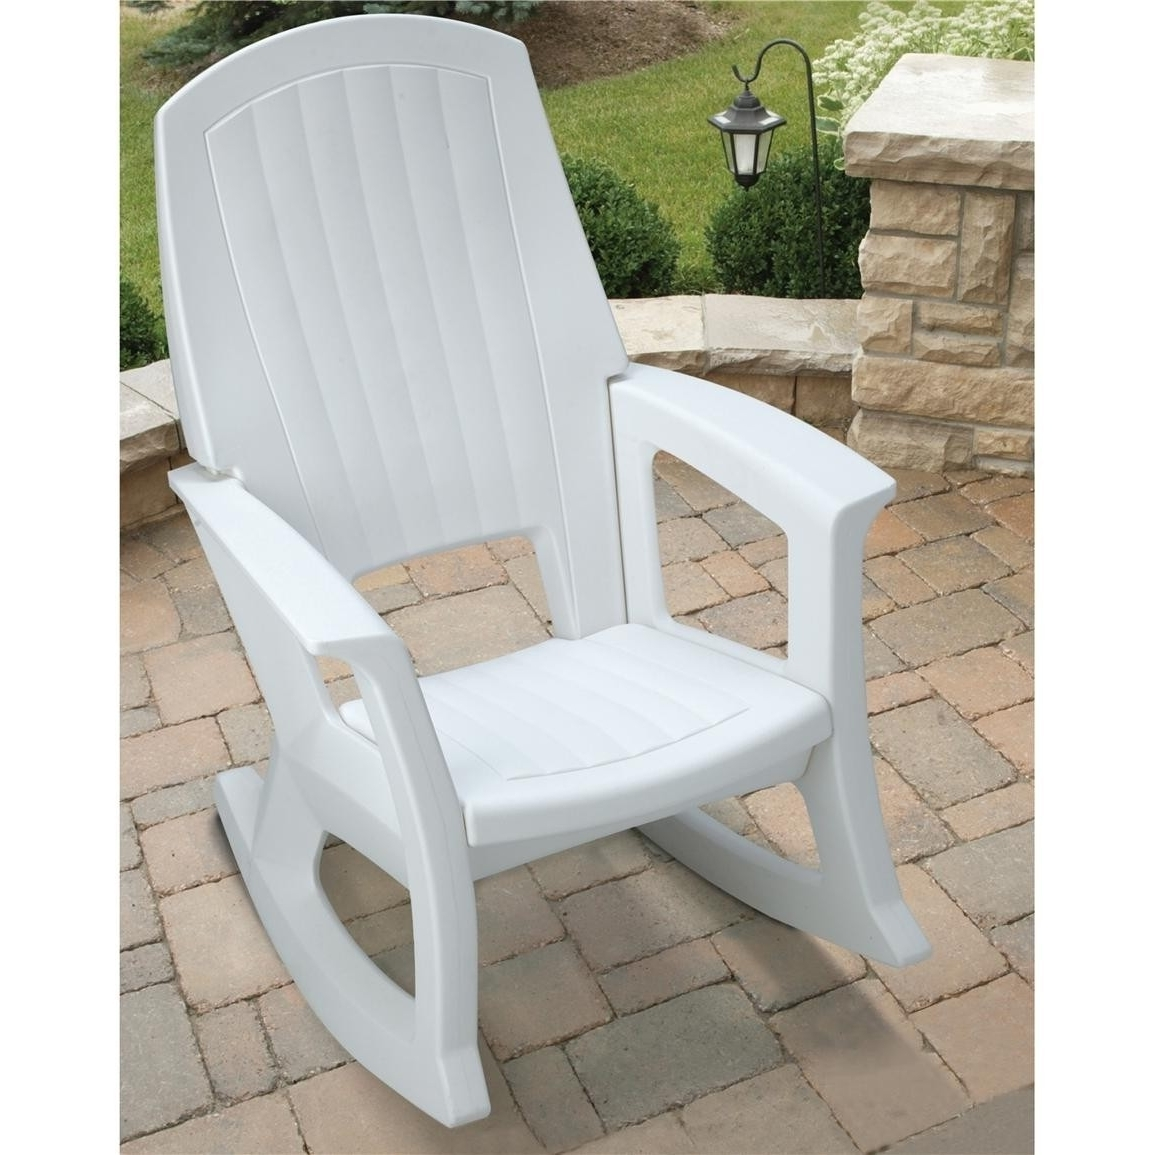 Semco Plastics White Resin Outdoor Patio Rocking Chair Semw Rural In Recent Resin Patio Rocking Chairs (View 4 of 20)